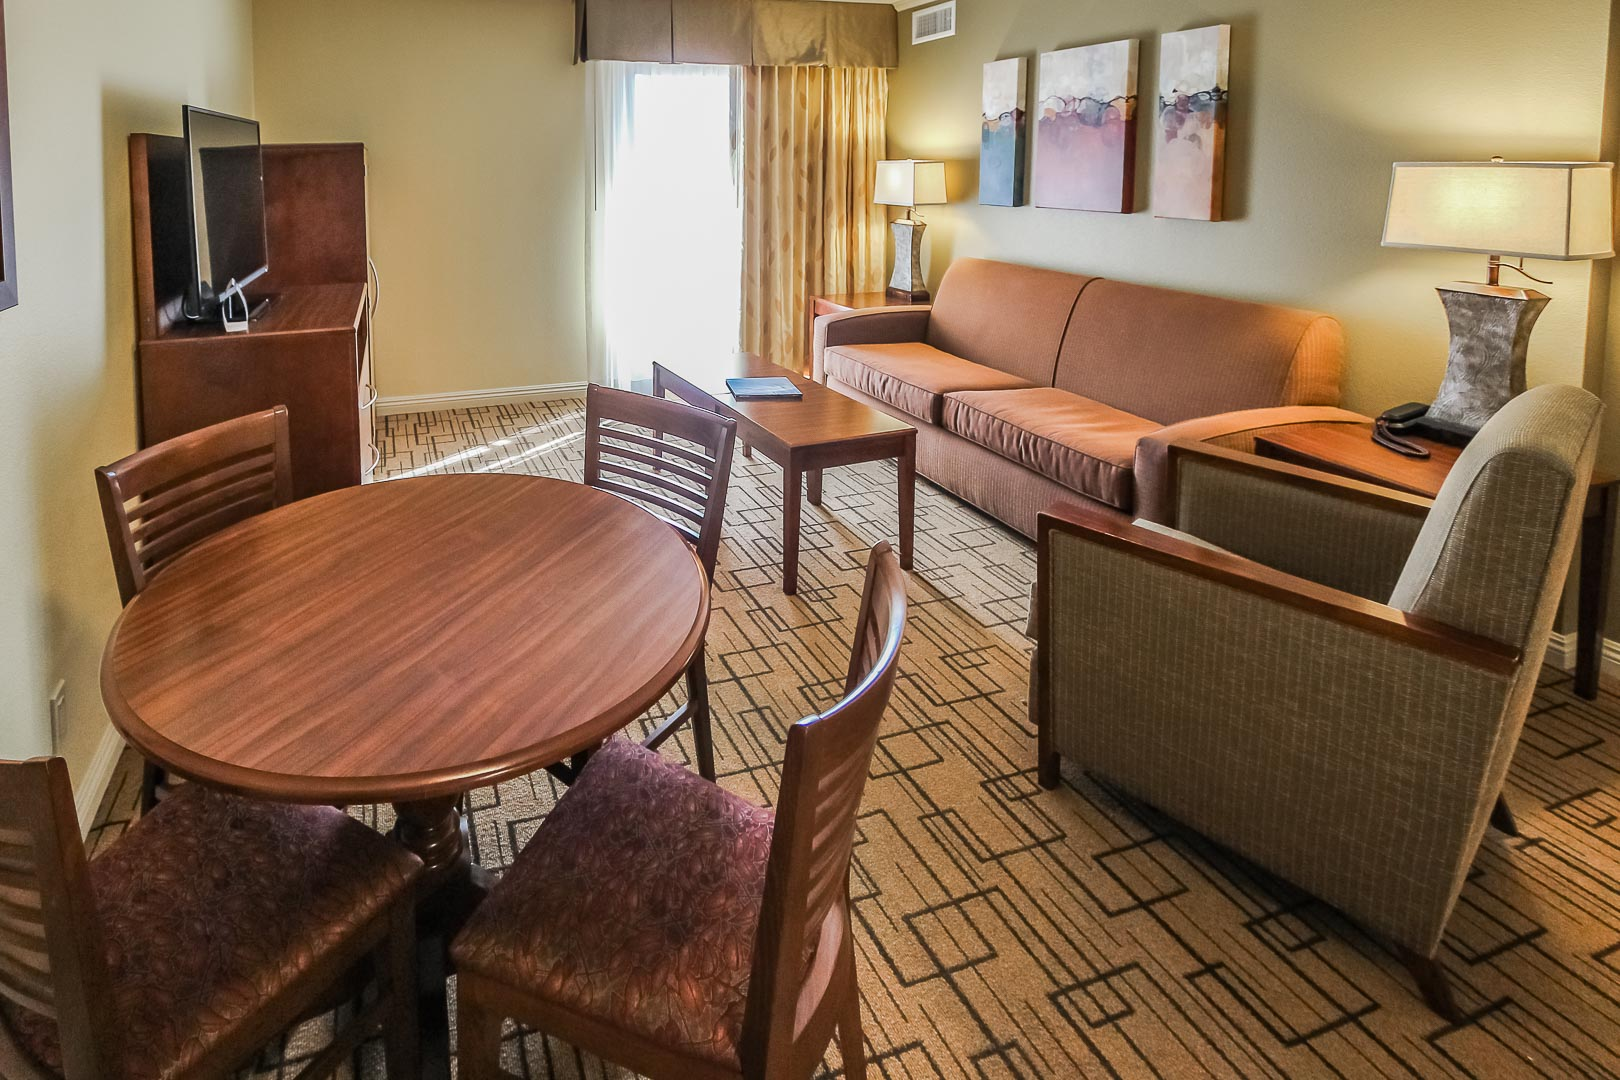 A standard One bedroom with living and dining room area at VRI's Winner Circle Resort in California.